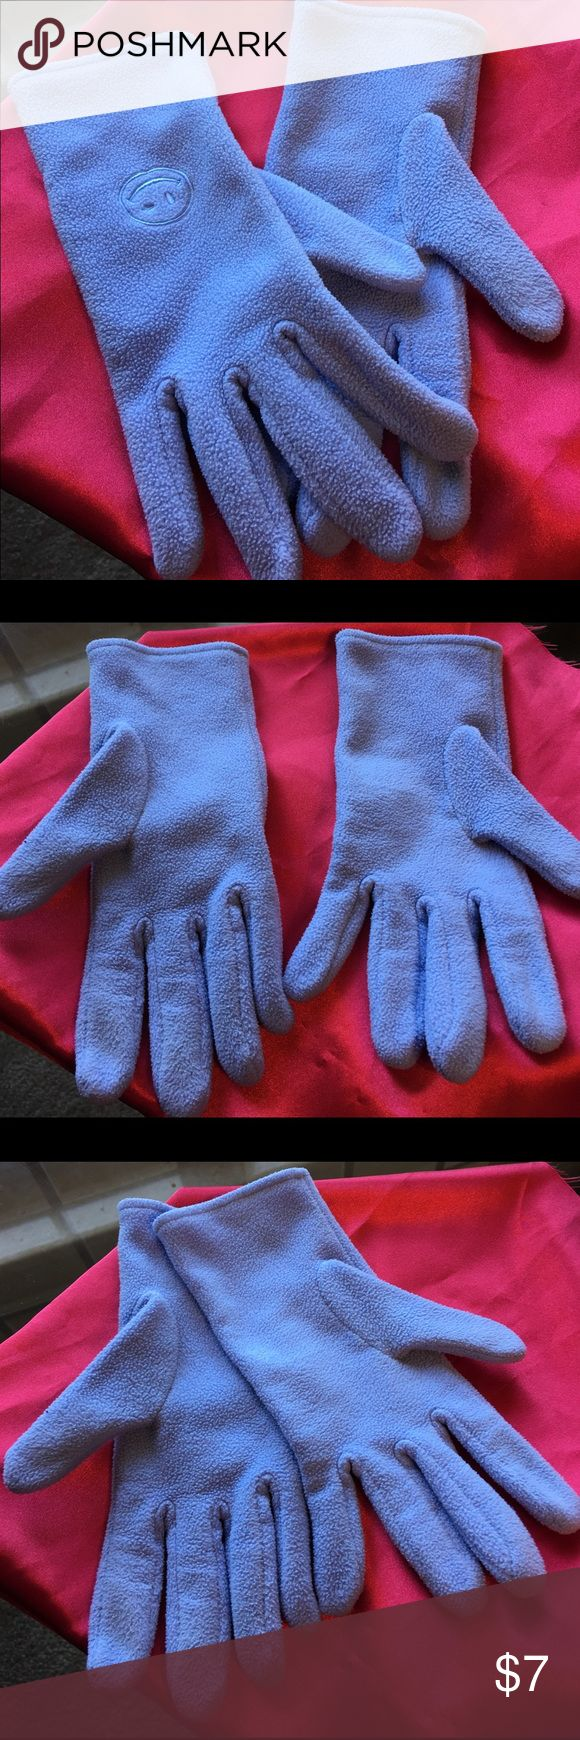 Women's Winter Light Blue Gloves/ On Huge Sales ❄️ This women's winter gloves is very light and stylish for winter time which you can set it with the knitted or fabric black, white, and light blue Coat, Winter Cape, Coat and Scarf . This gloves has made from the warm and soft fabric , this item is on the huge seasonal sales💍👗👖👞👛👒🕶👠👡👓👜👚👢👕 Accessories Gloves & Mittens